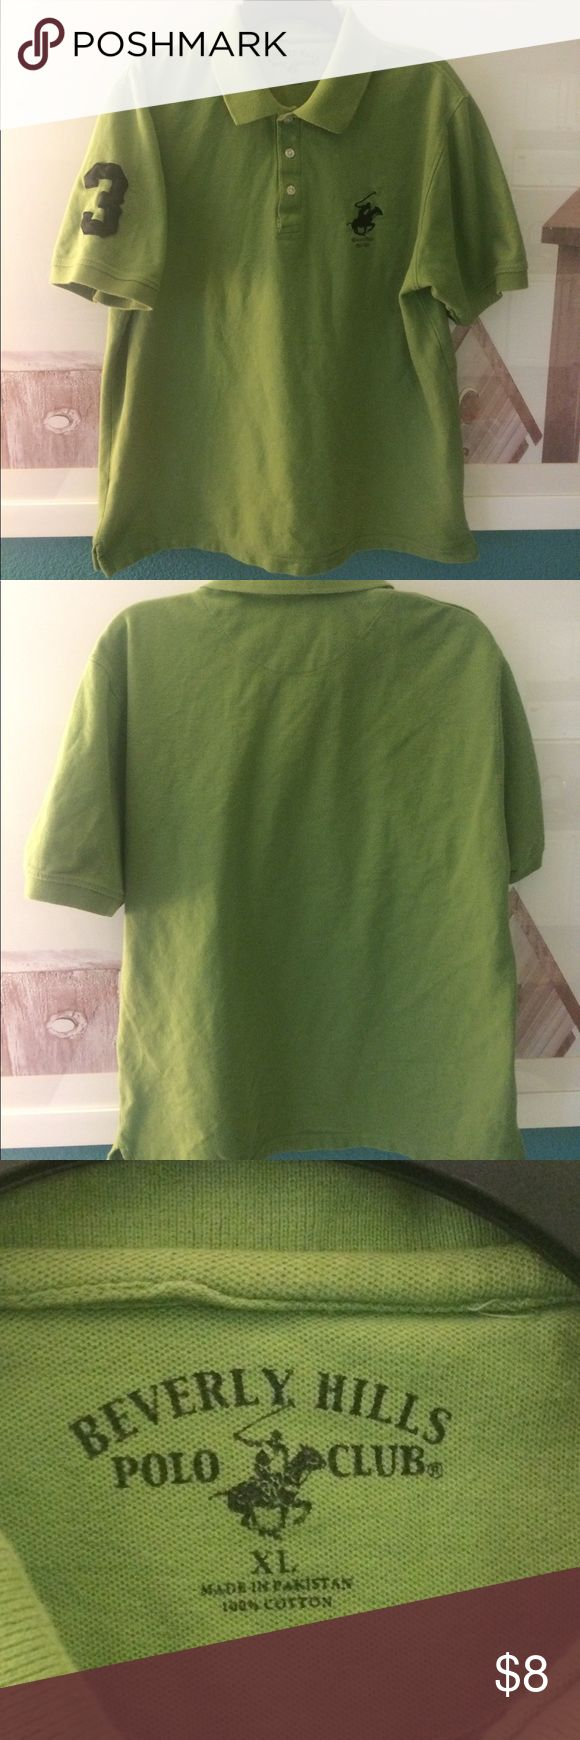 Beverly Hills polo club green polo shirt Size XL beverly hills polo Shirts Polos